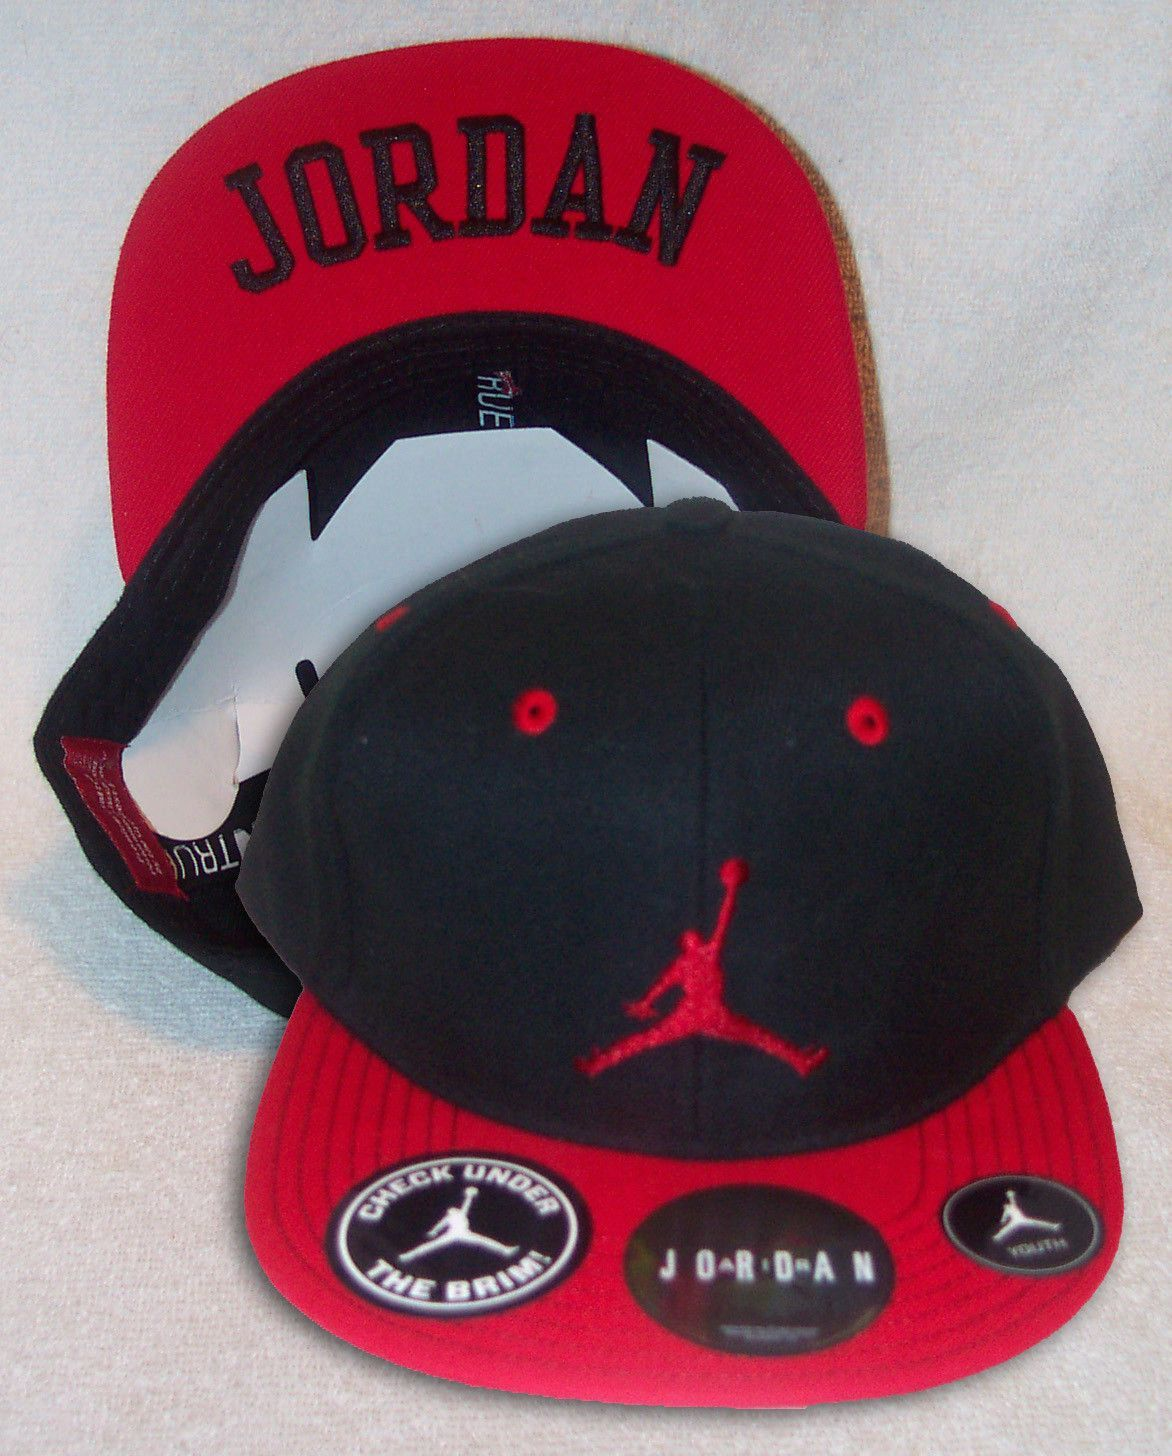 080a5933585 NIKE Air Jordan True Jumpman Youth Boys Black Red Snapback Hat ...